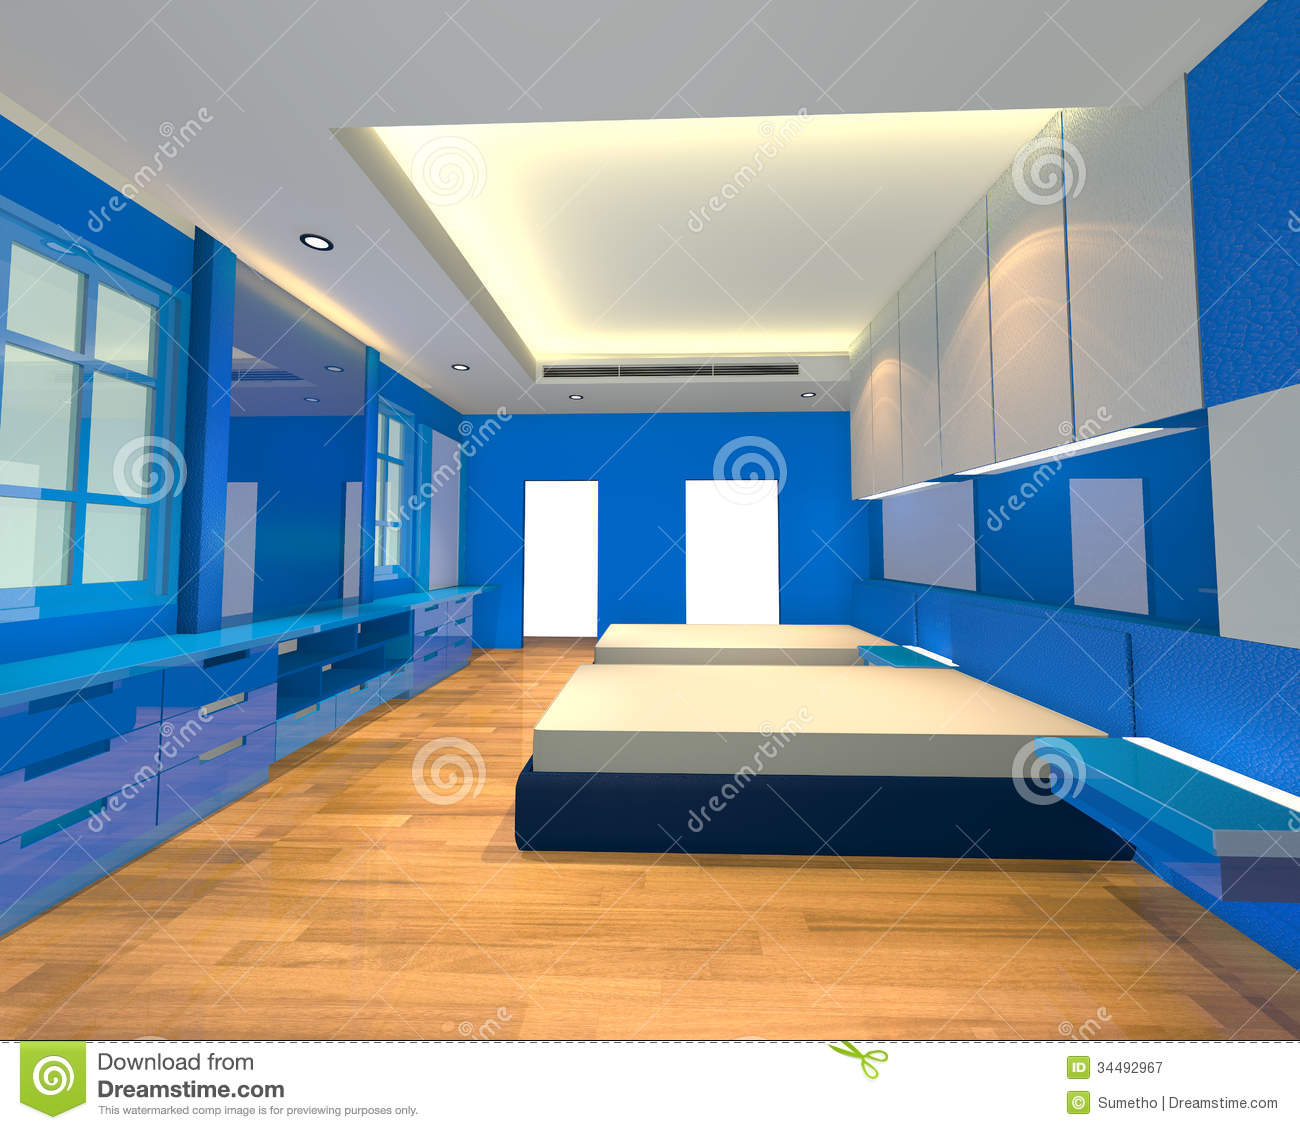 Blue Interior Design Interior Design Bedroom Blue Theme Royalty Free Stock